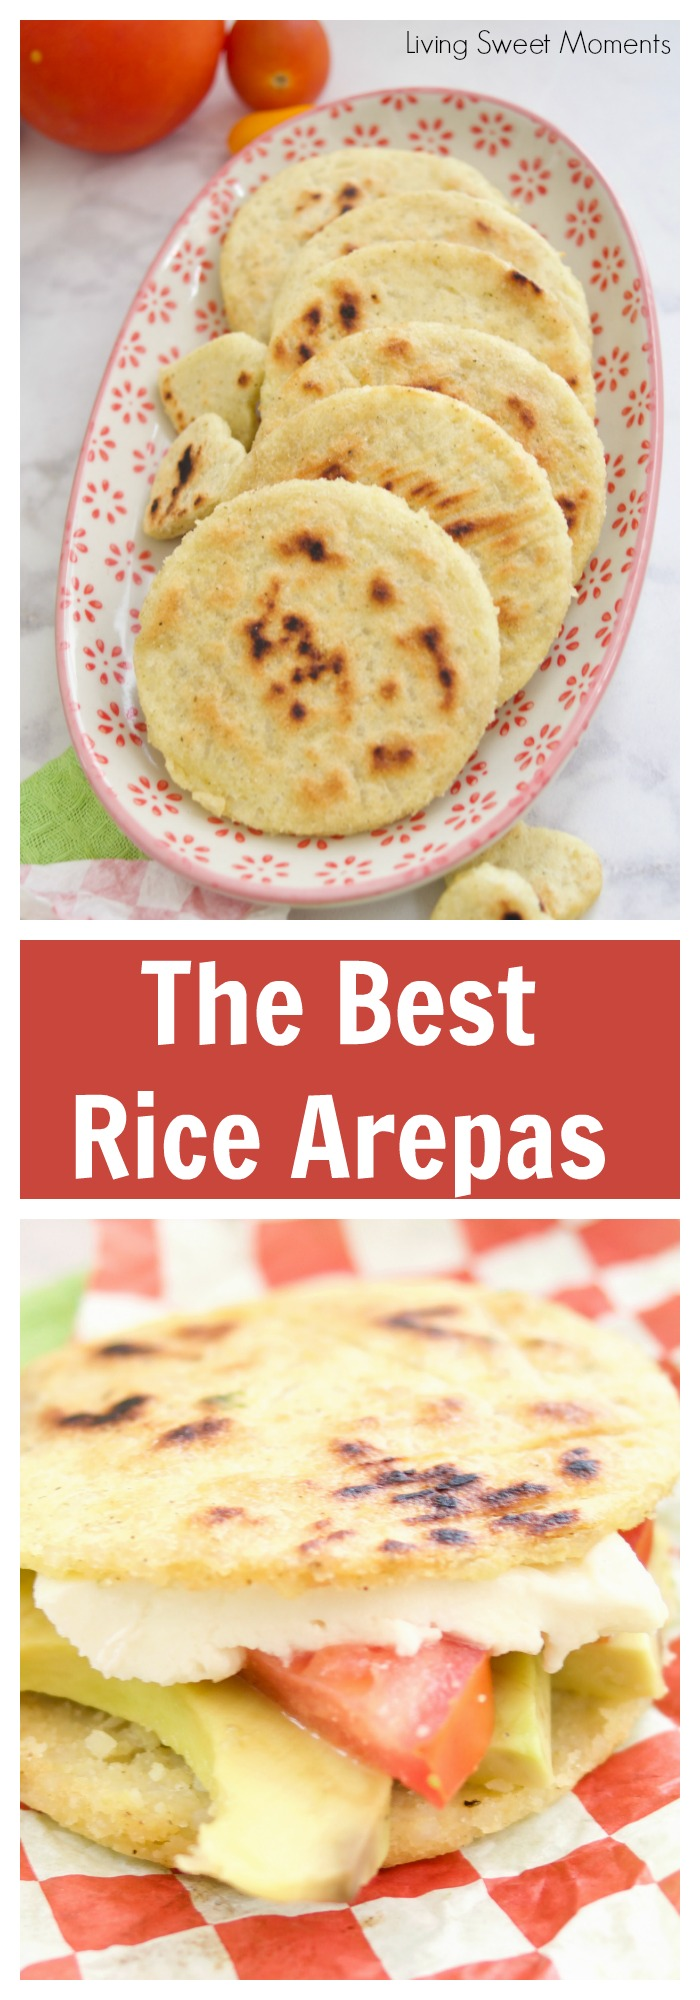 Got any leftover rice? These delicious gluten-free crispy rice arepas aremade to be stuffed with your favorite fillings. Ideal for breakfast & dinner. #ad #VigoTakesYouHome